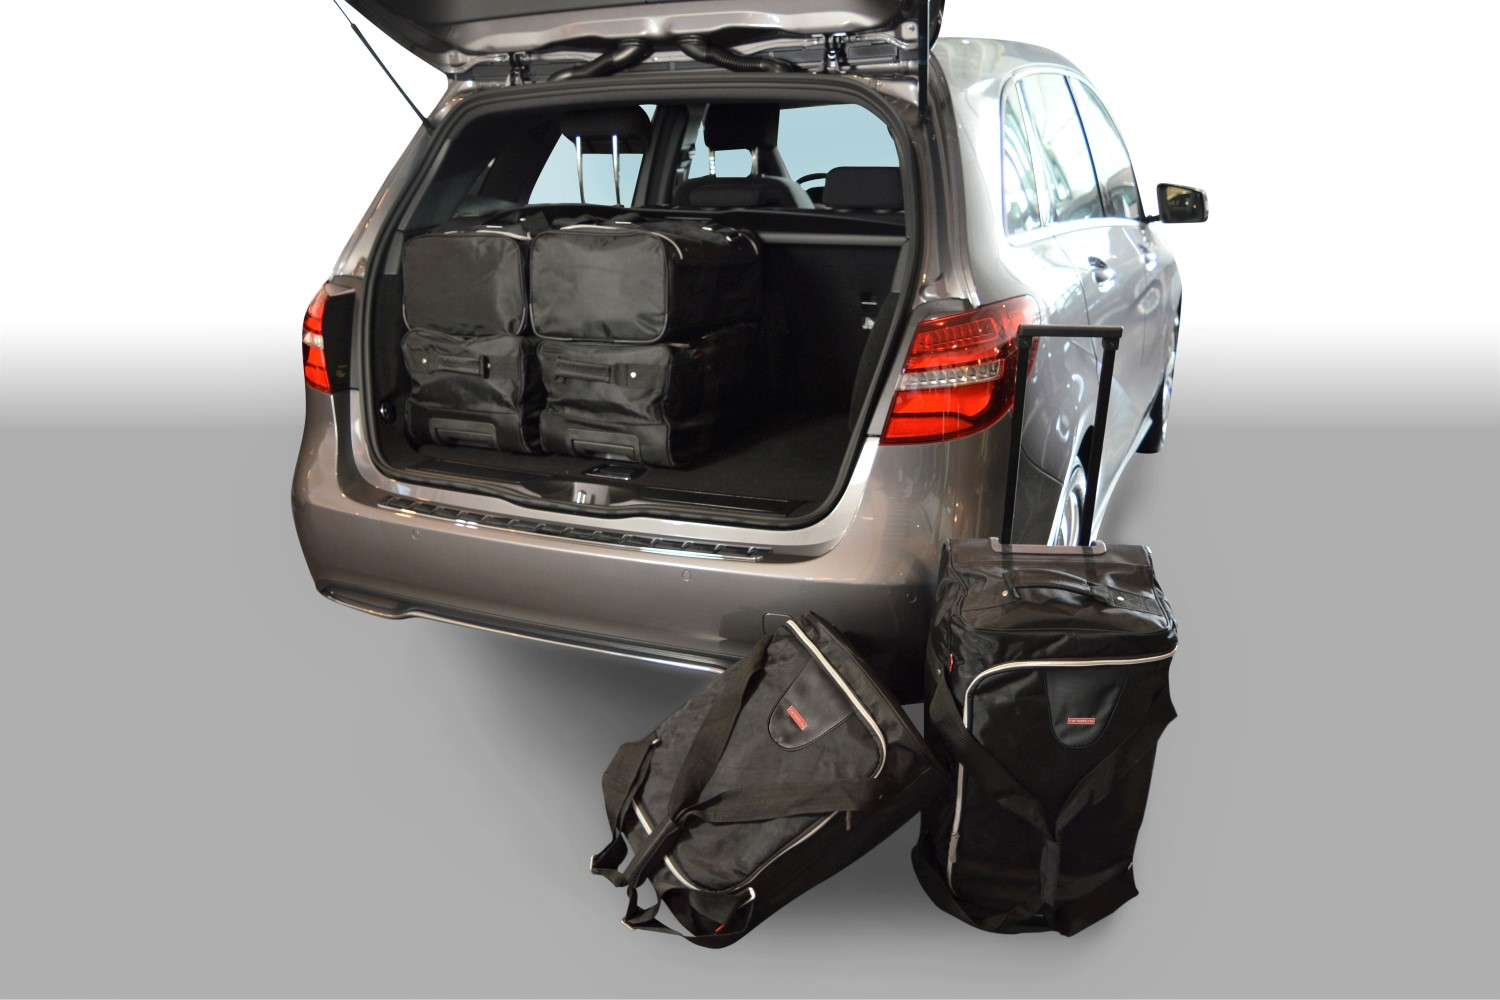 car bags mercedes benz b klasse reisetaschen set w246 ab. Black Bedroom Furniture Sets. Home Design Ideas